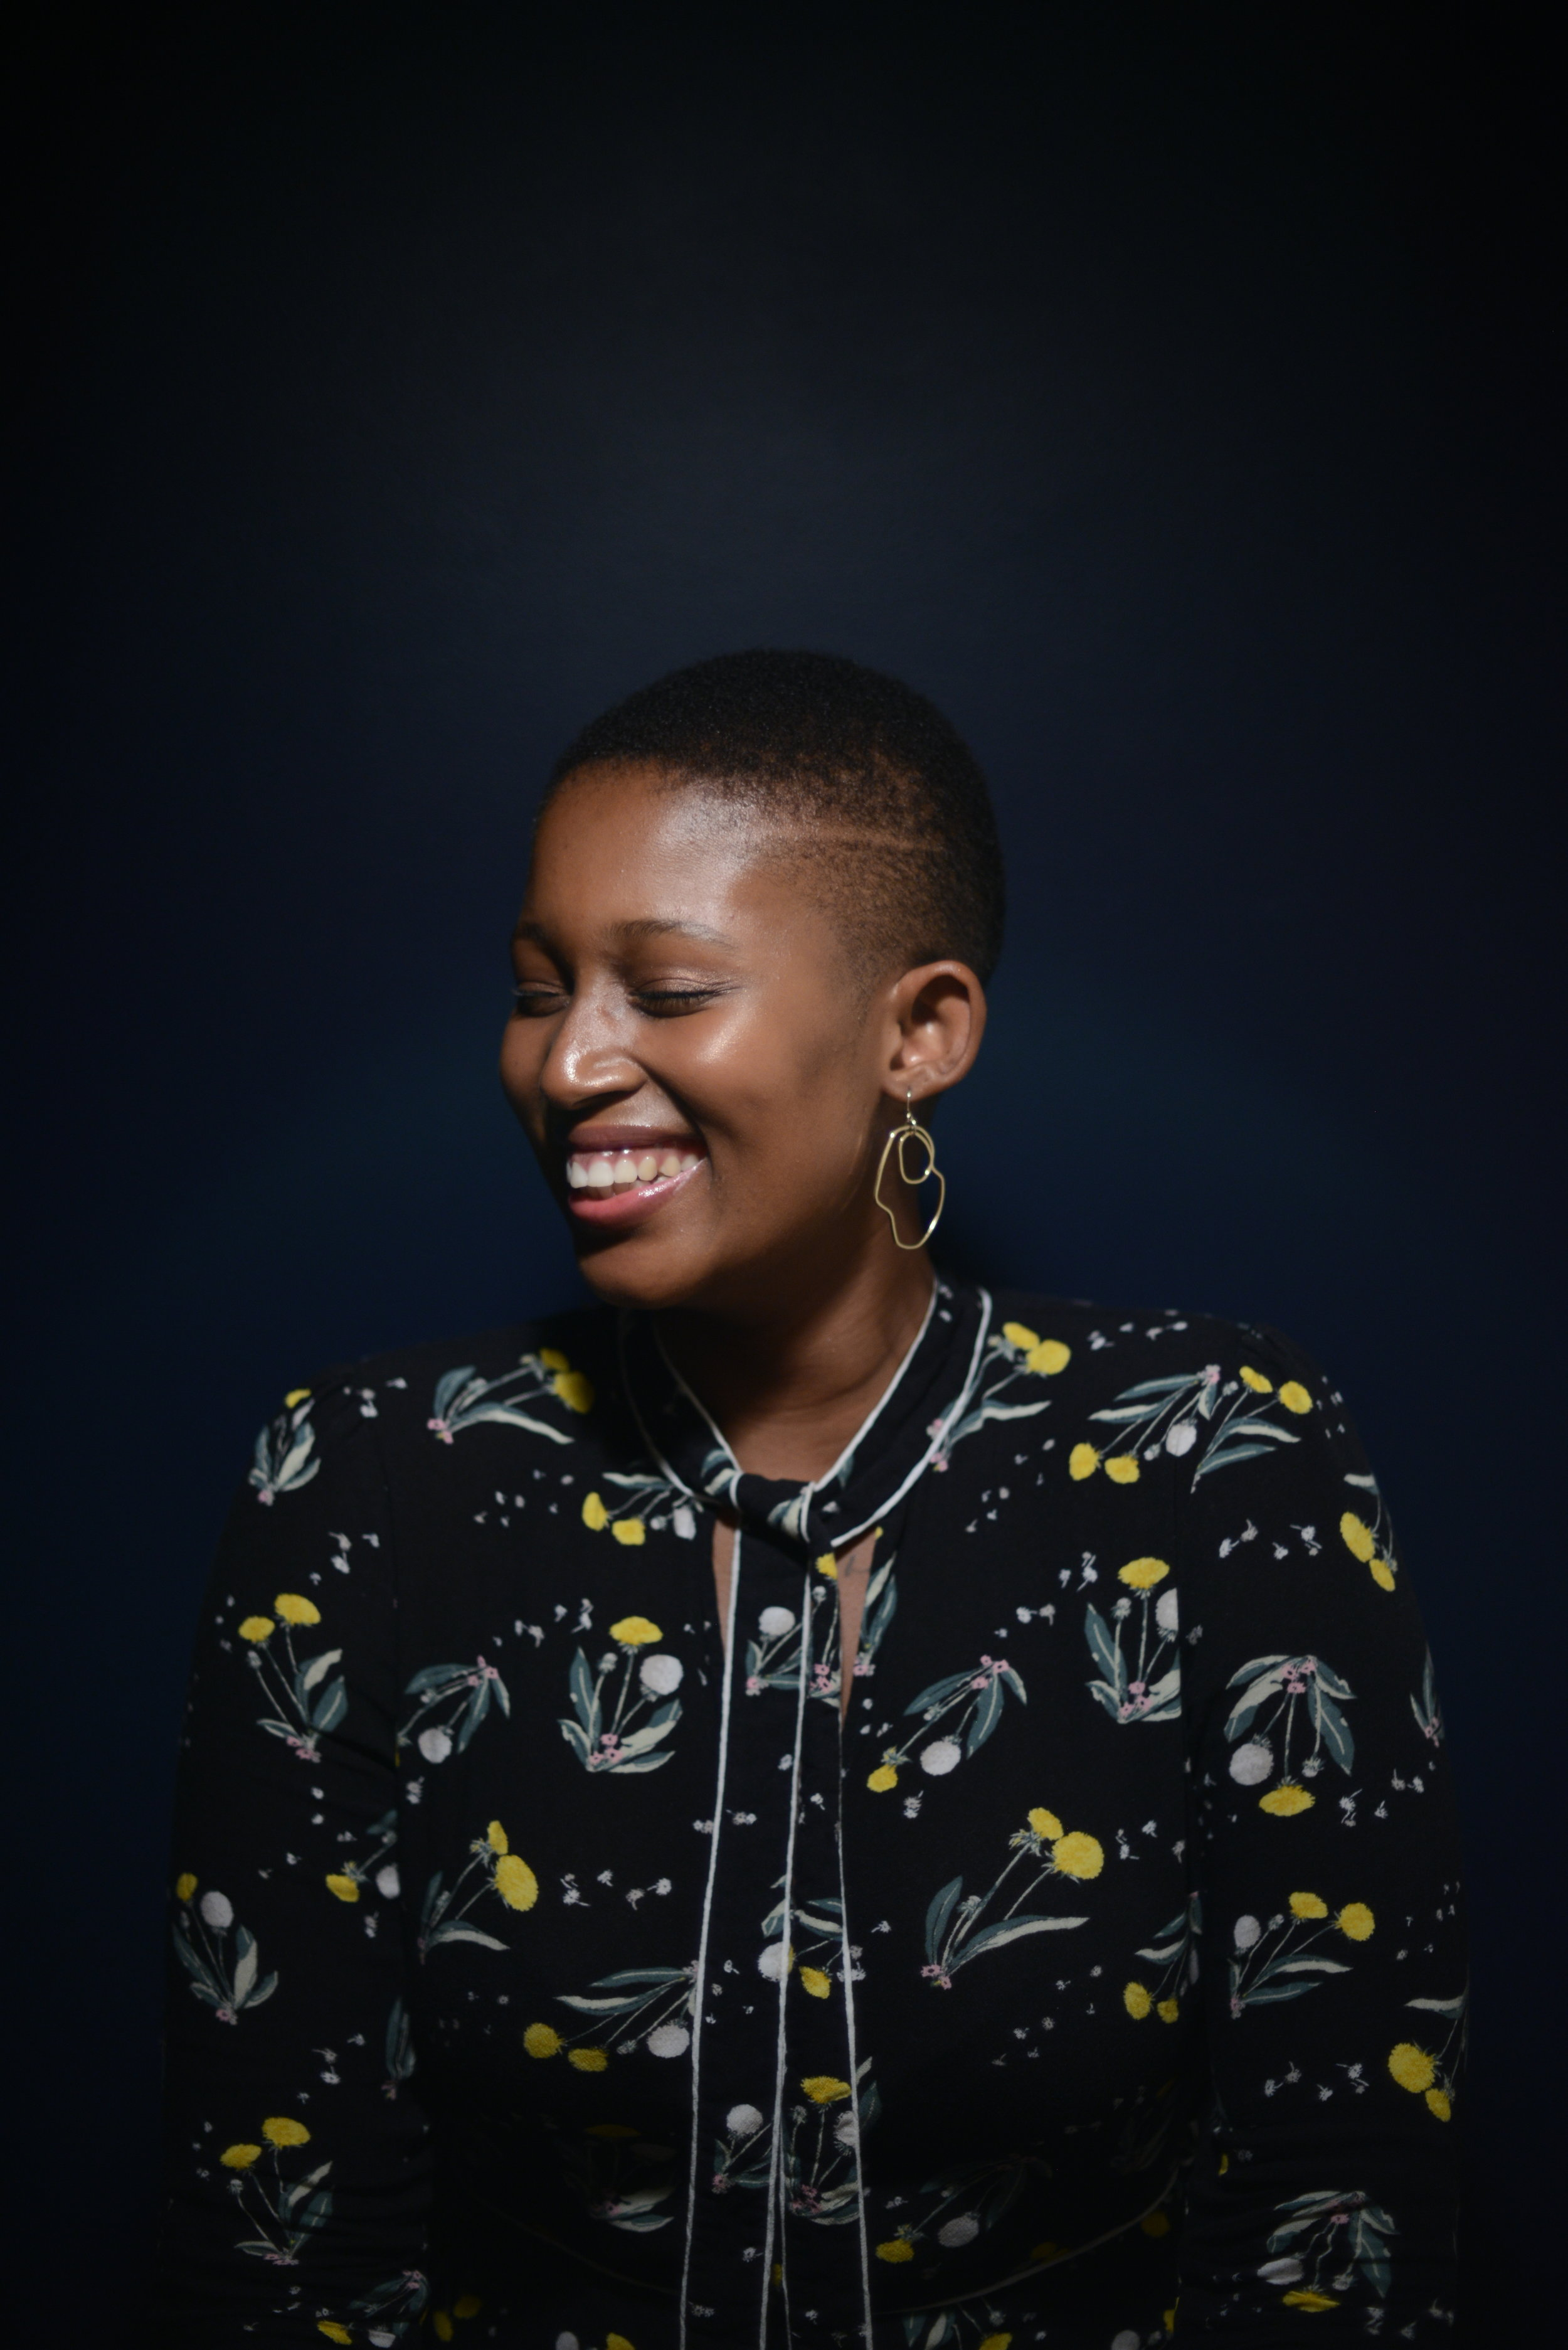 bio - Nwabisa Tolom graduated from AAA School of Advertising and subsequently worked at Saatchi & Saatchi, MetropolitanRepublic and TBWA. After a few rewarding years in the South African ad industry, she moved on to study Screenwriting at The New York Film Academy. Post graduation, she worked at one of NYC's most forward-thinking ad agencies, Johannes Leonardo.Nwabisa is a regular contributor to MPL, Think and formerly Mercedes-Benz Magazine. Her essays can be found in 101 Testimonies of Hope, a paperback anthology of healing and faith based stories.As a copywriter, creative director and filmmaker, Nwabisa helps her clients tell compelling brands stories that are as progressive as they are memorable.She currently works and plays in Brooklyn, NY.AwardsCannes Lions Grand Prix3 x Cannes Lions7 x Clio Awards4 x Loerie AwardsAMP Best in ShowAICE Best Digital ContentAICP Shortlist